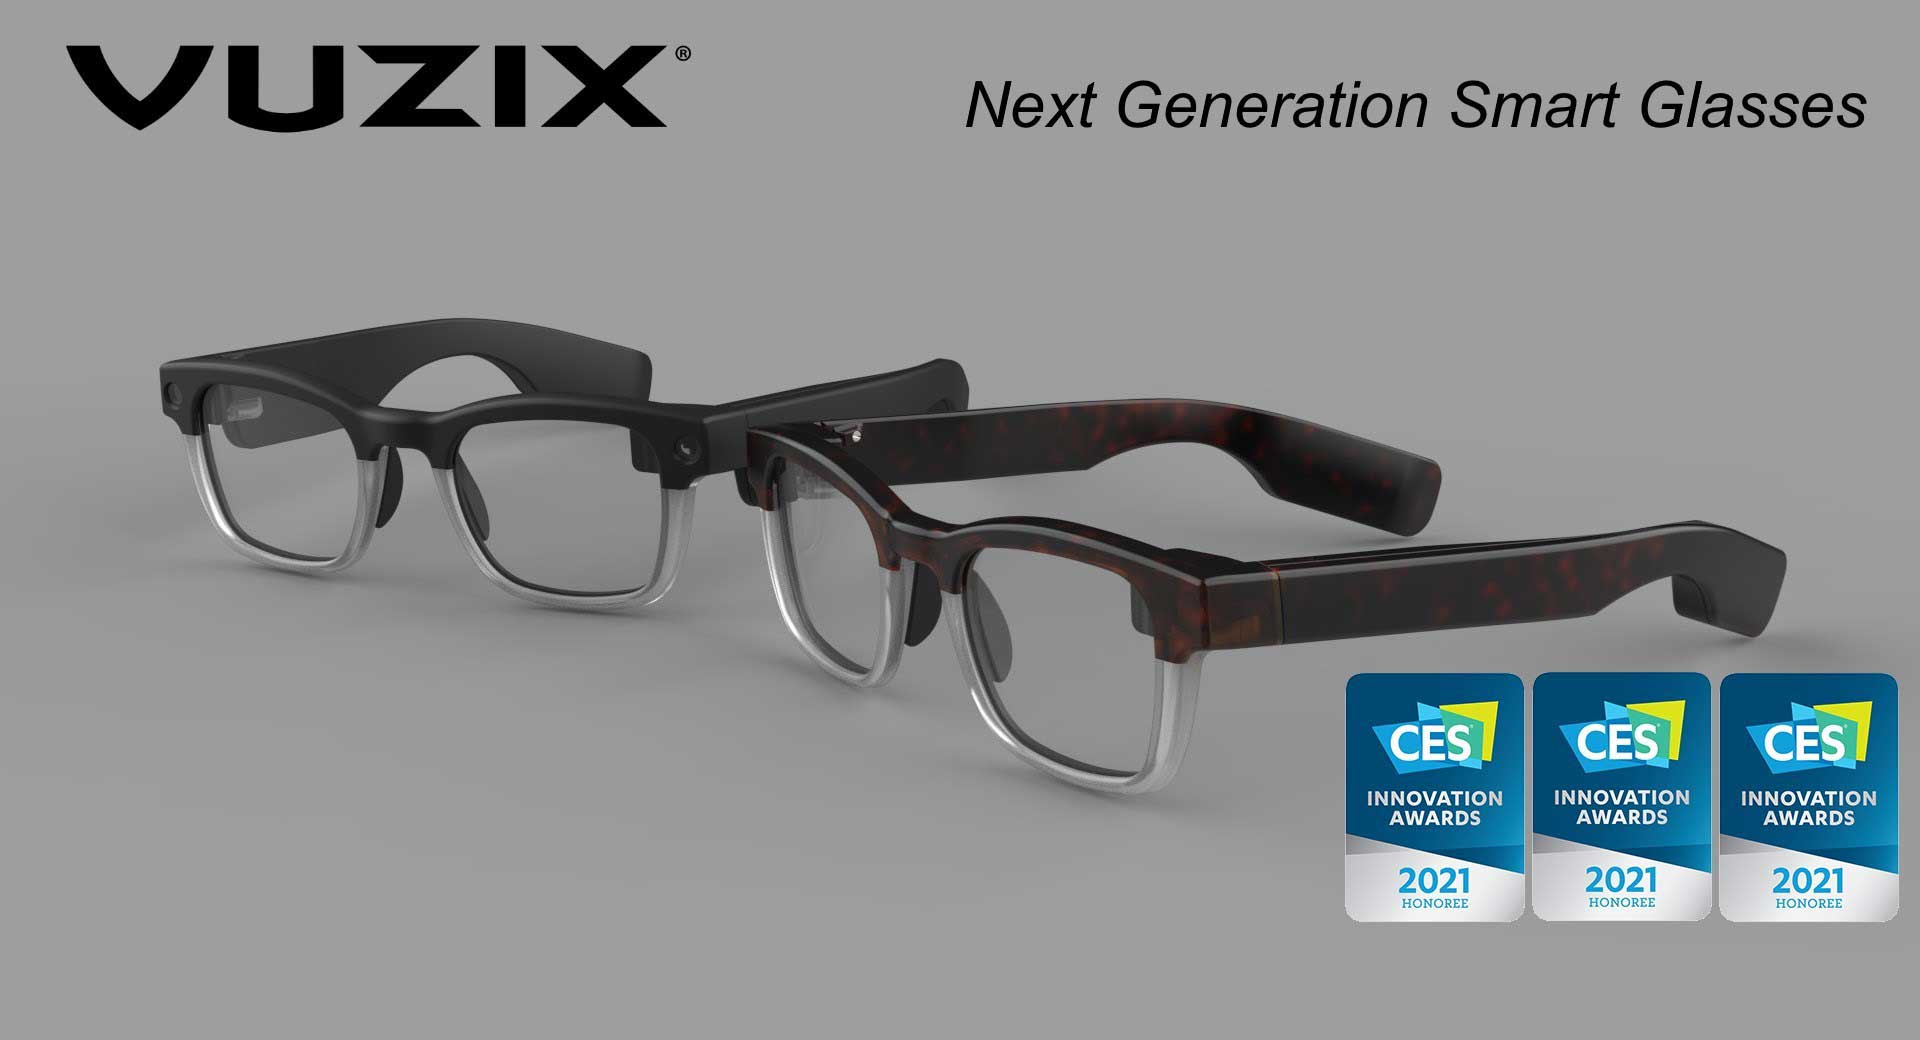 Vuzix Next Gen Smart Glasses Win Big at CES 2021